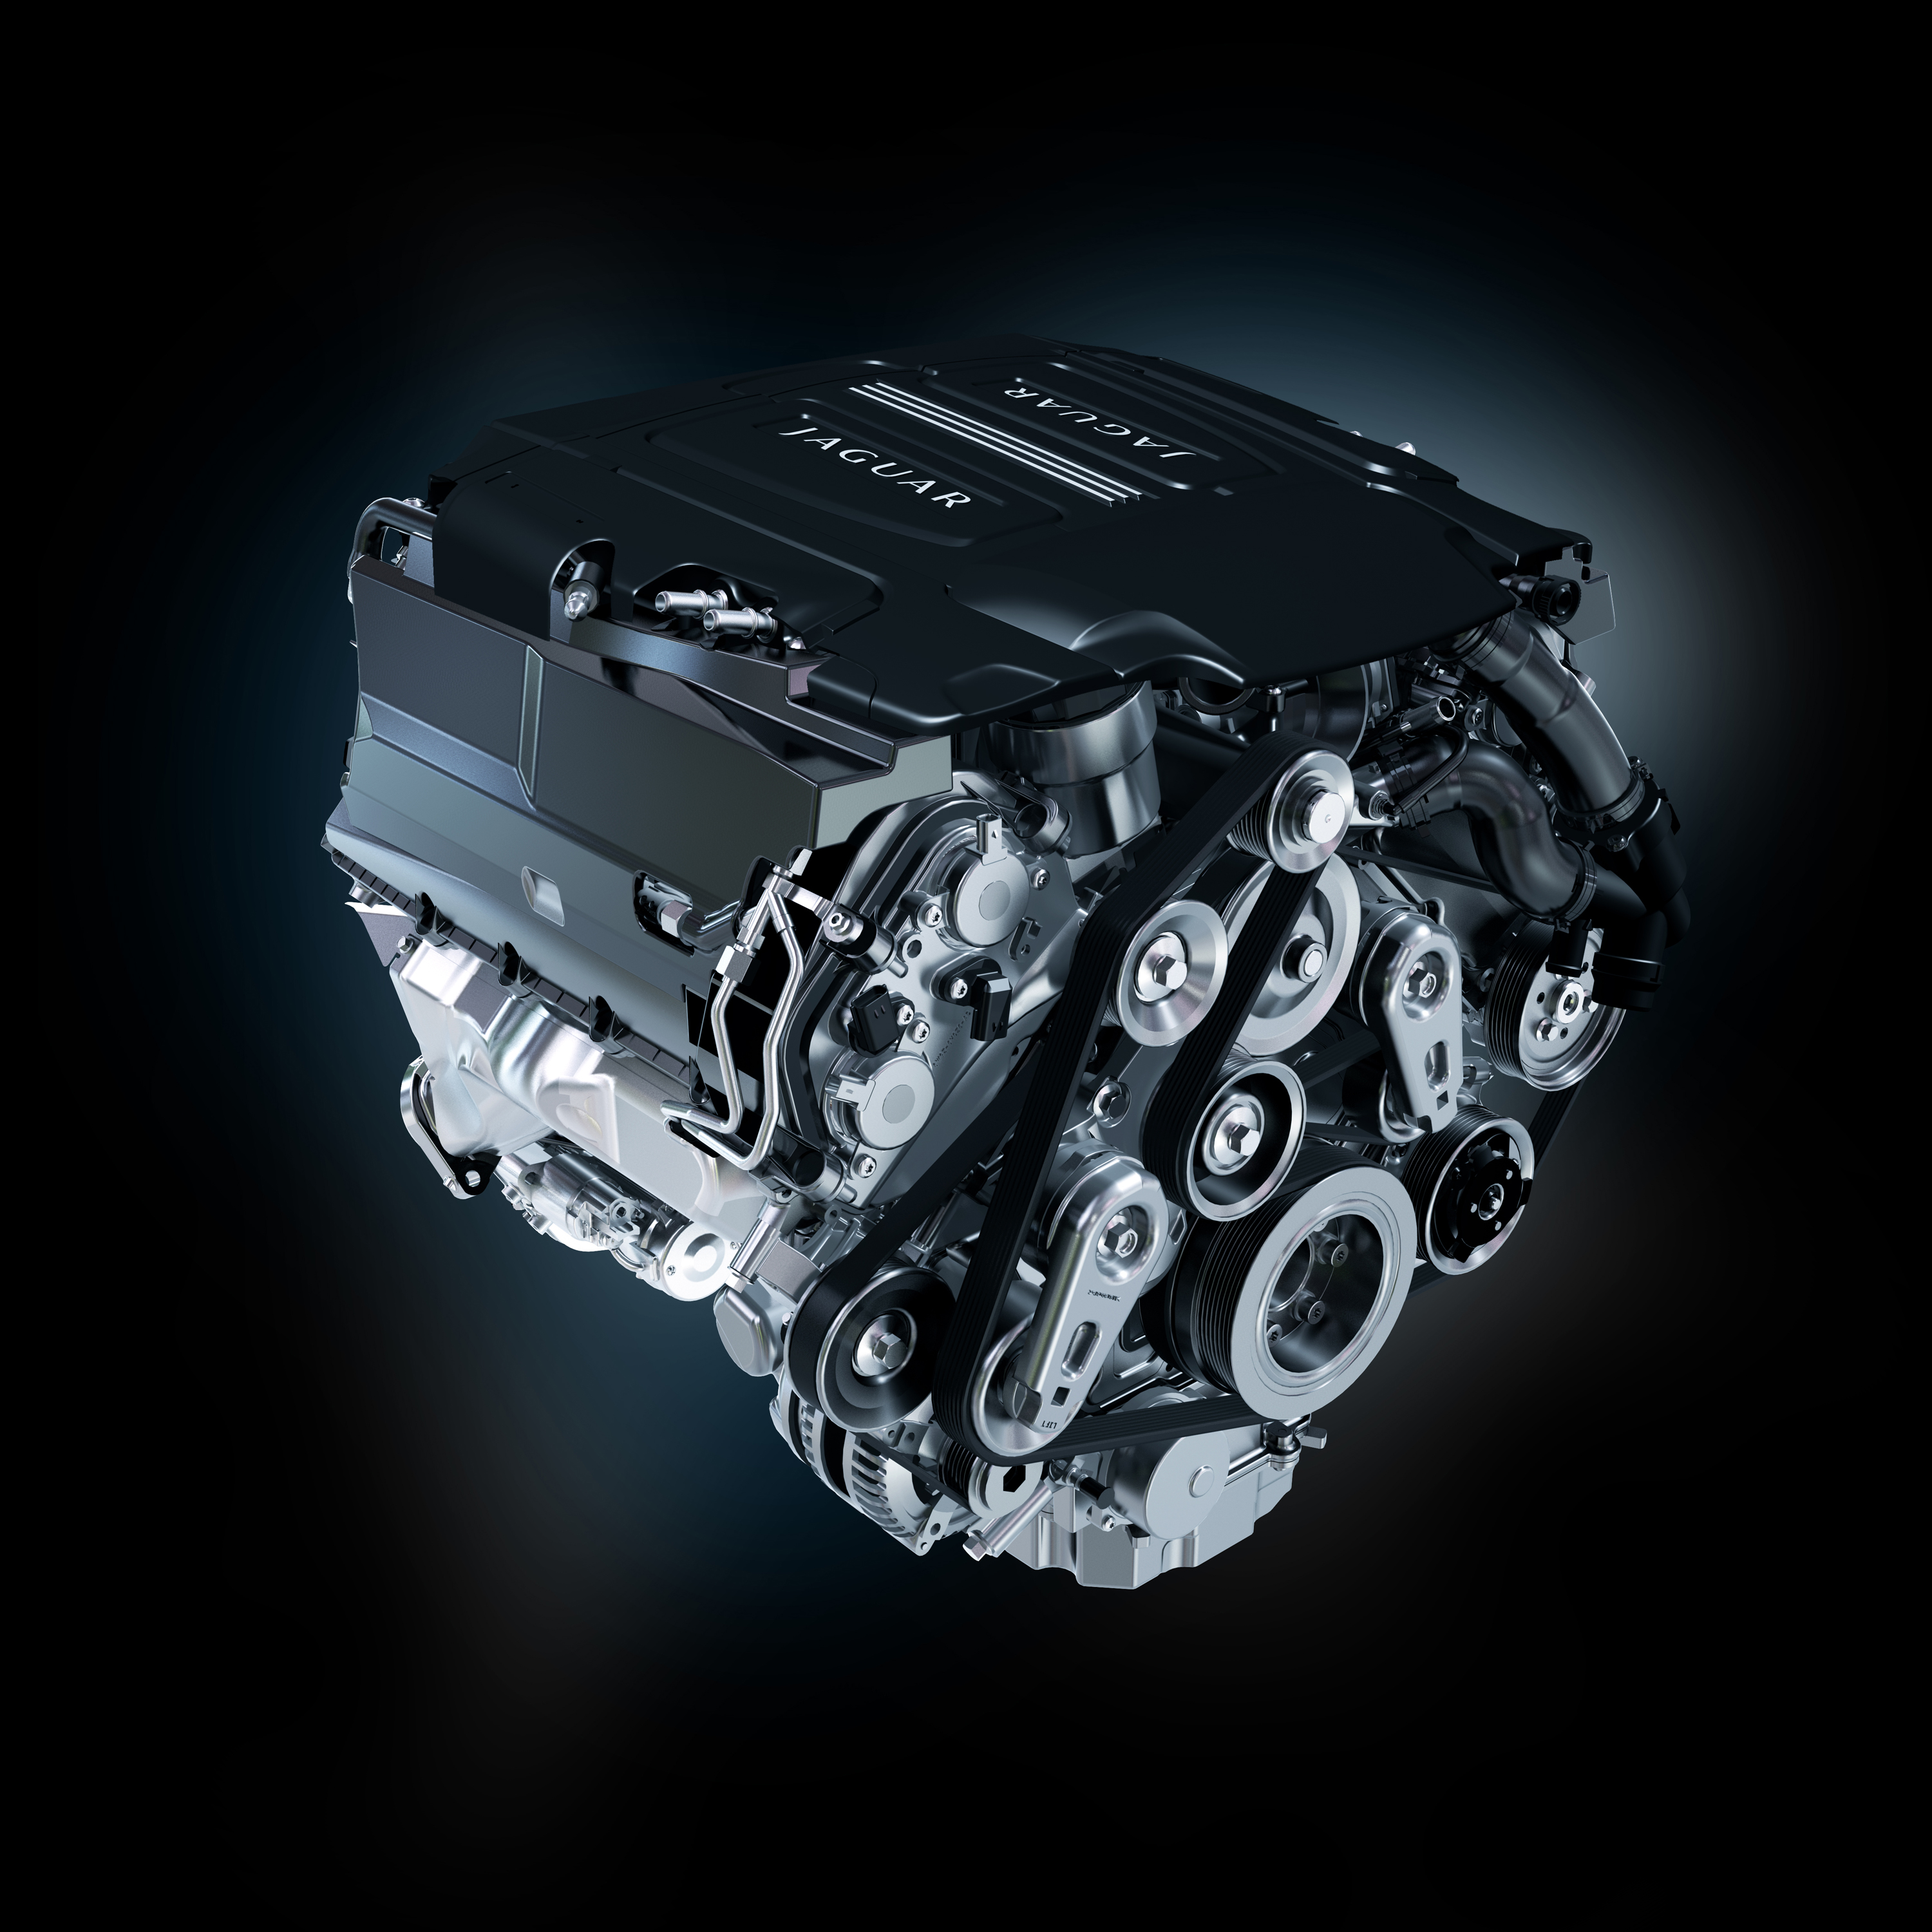 Jaguar 5.0L V8 Supercharged - engine / moteur